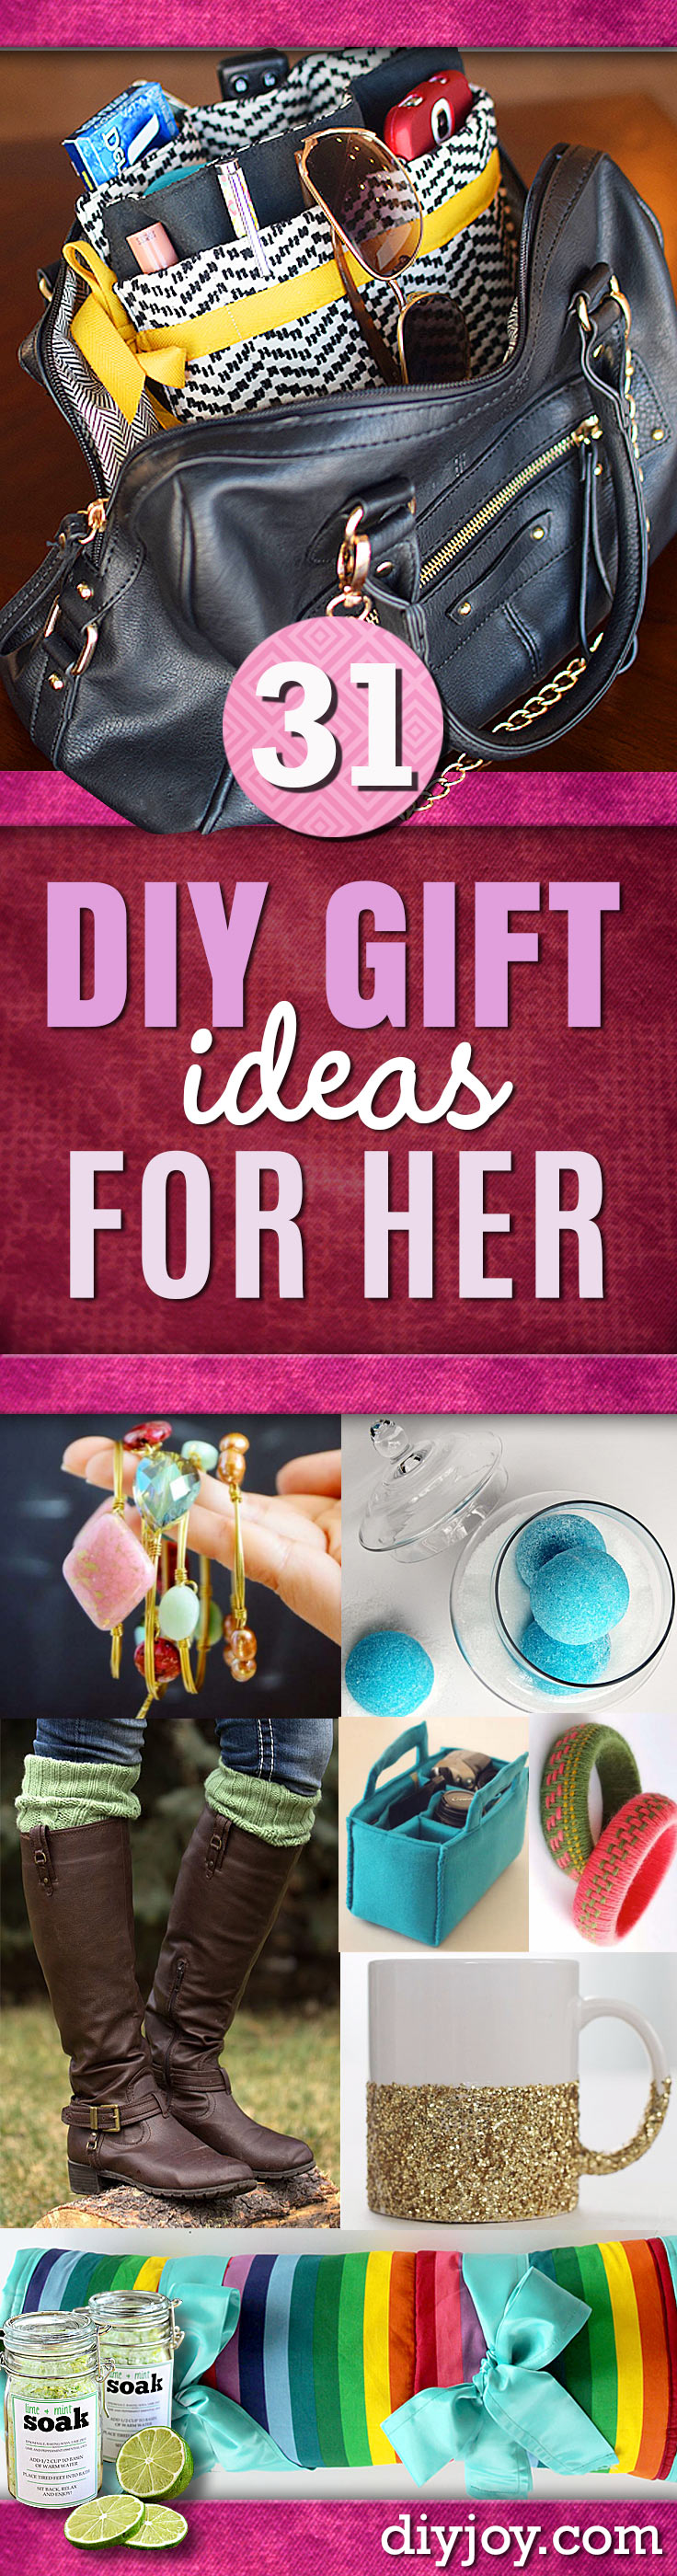 DIY Gifts For Her